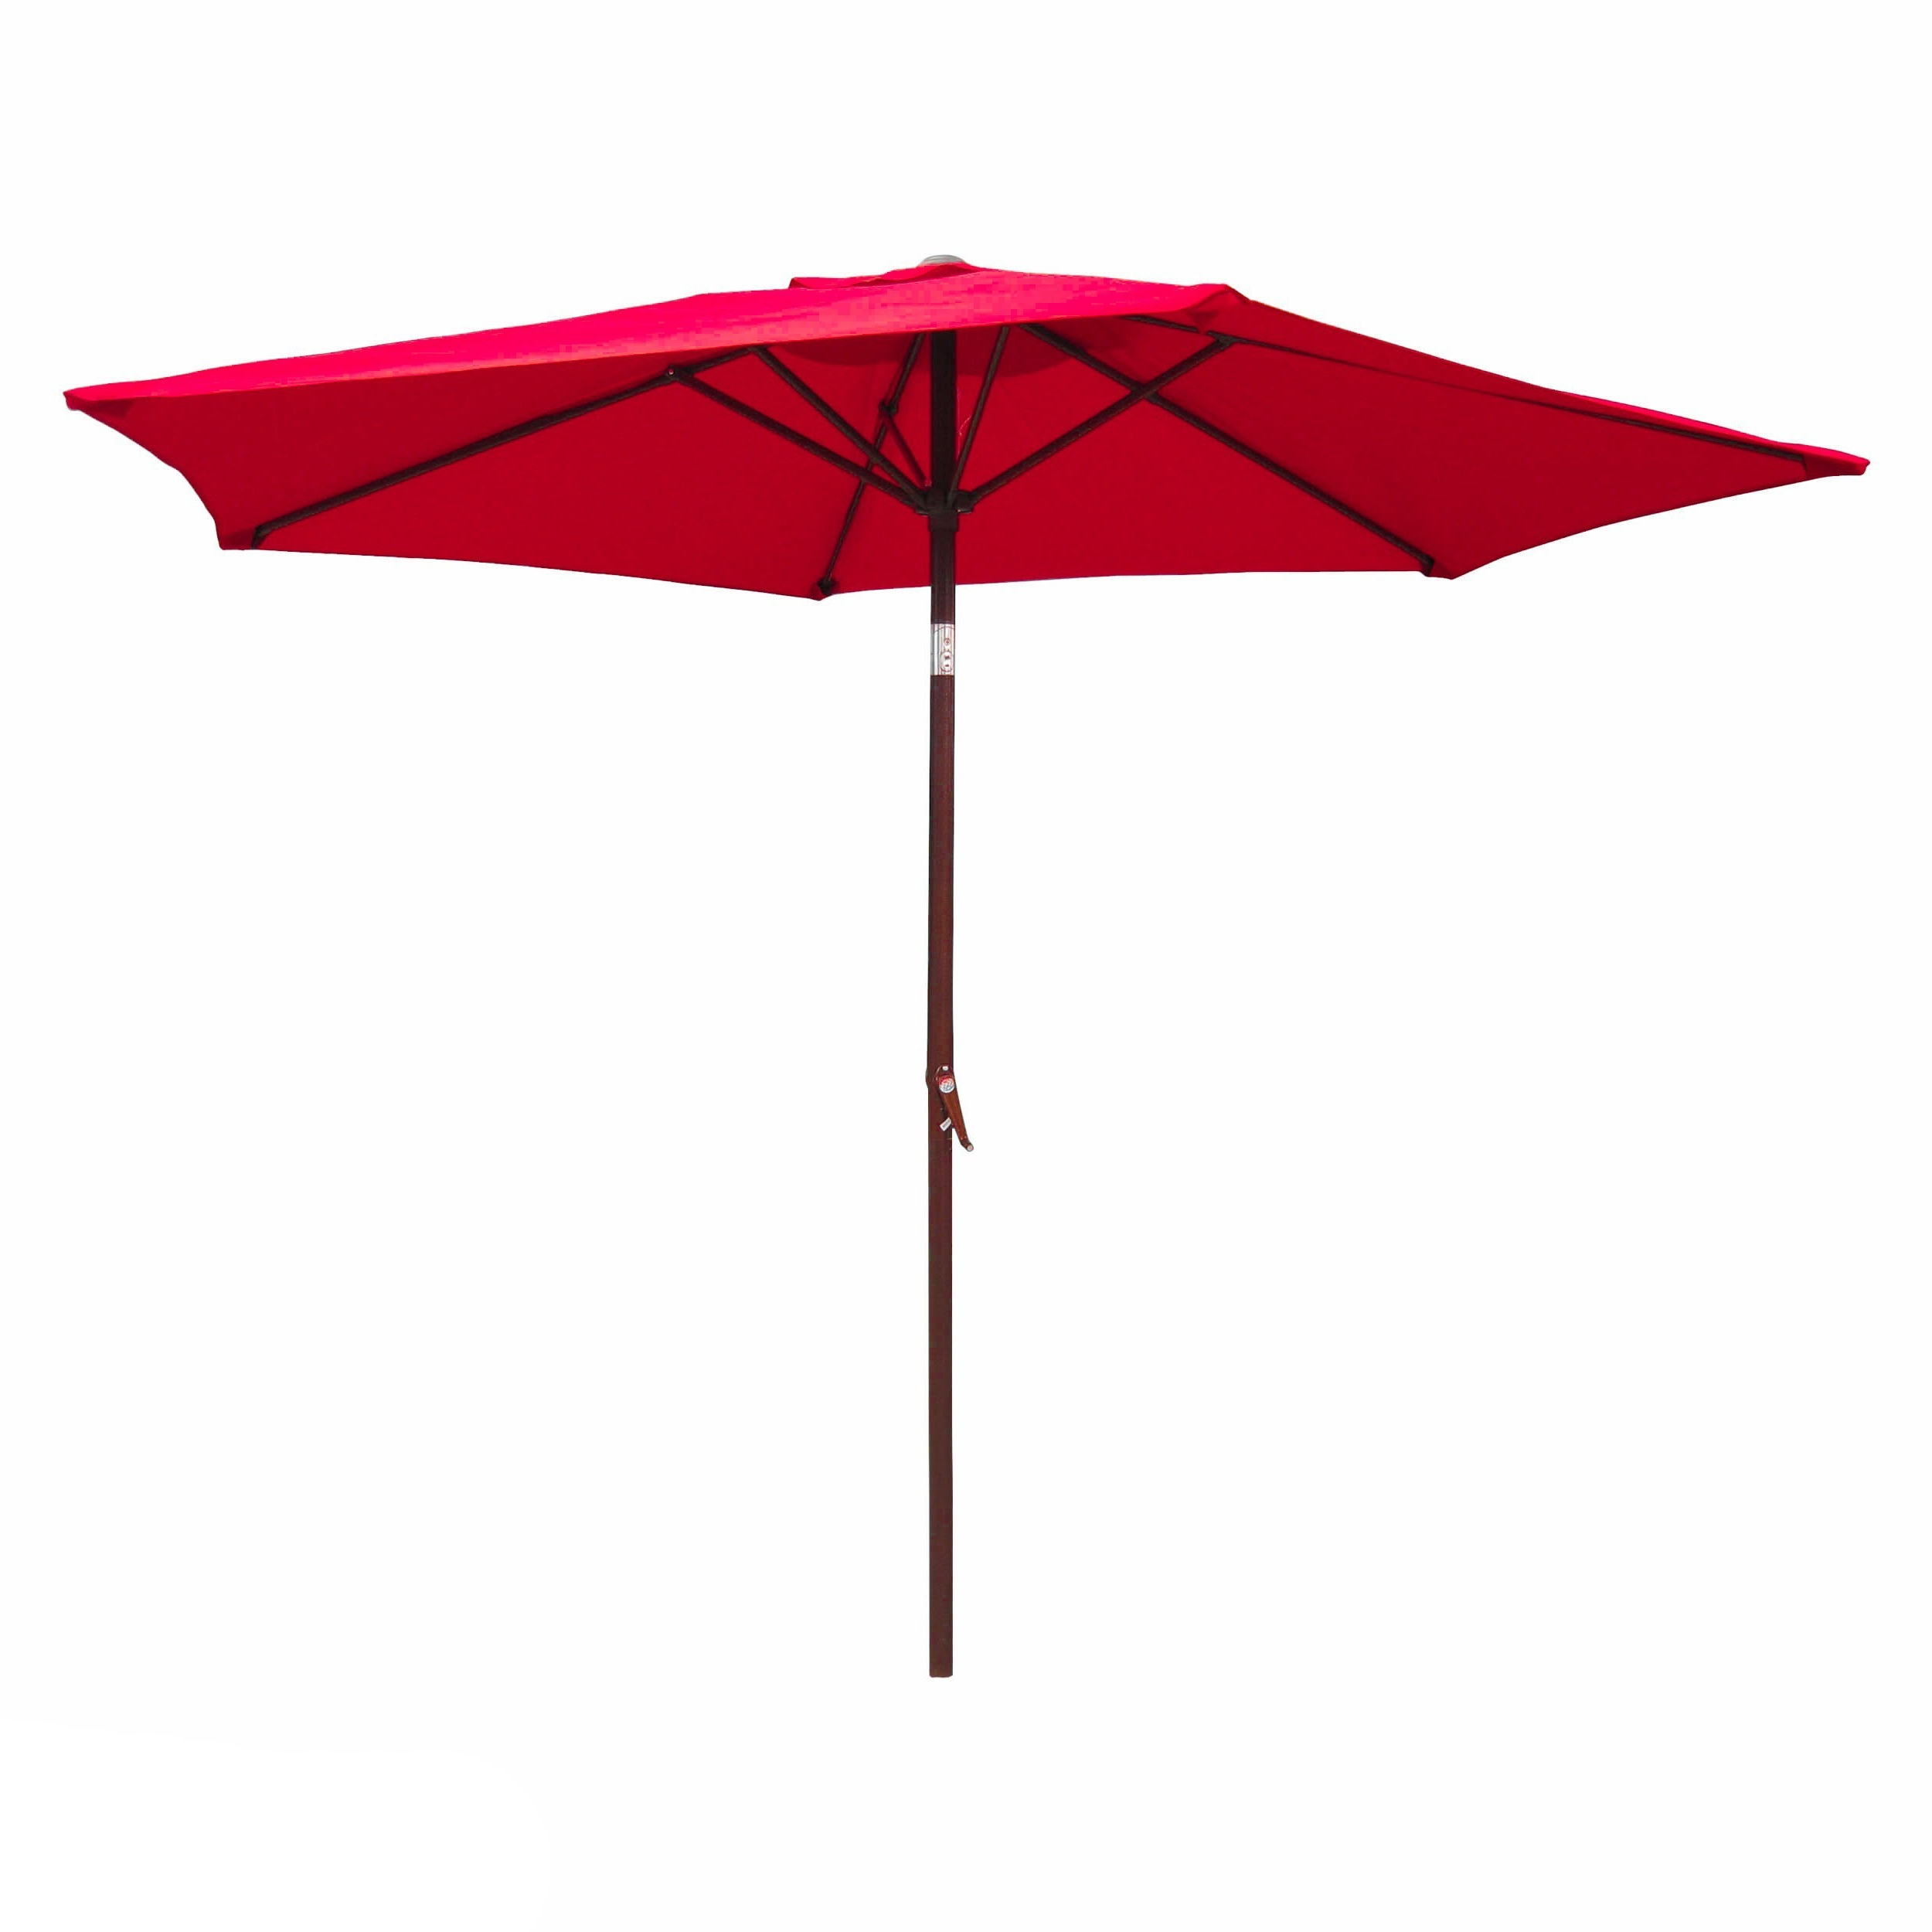 Patio Umbrella 8 Foot With Regard To Most Recently Released Frome Market Umbrellas (View 16 of 20)